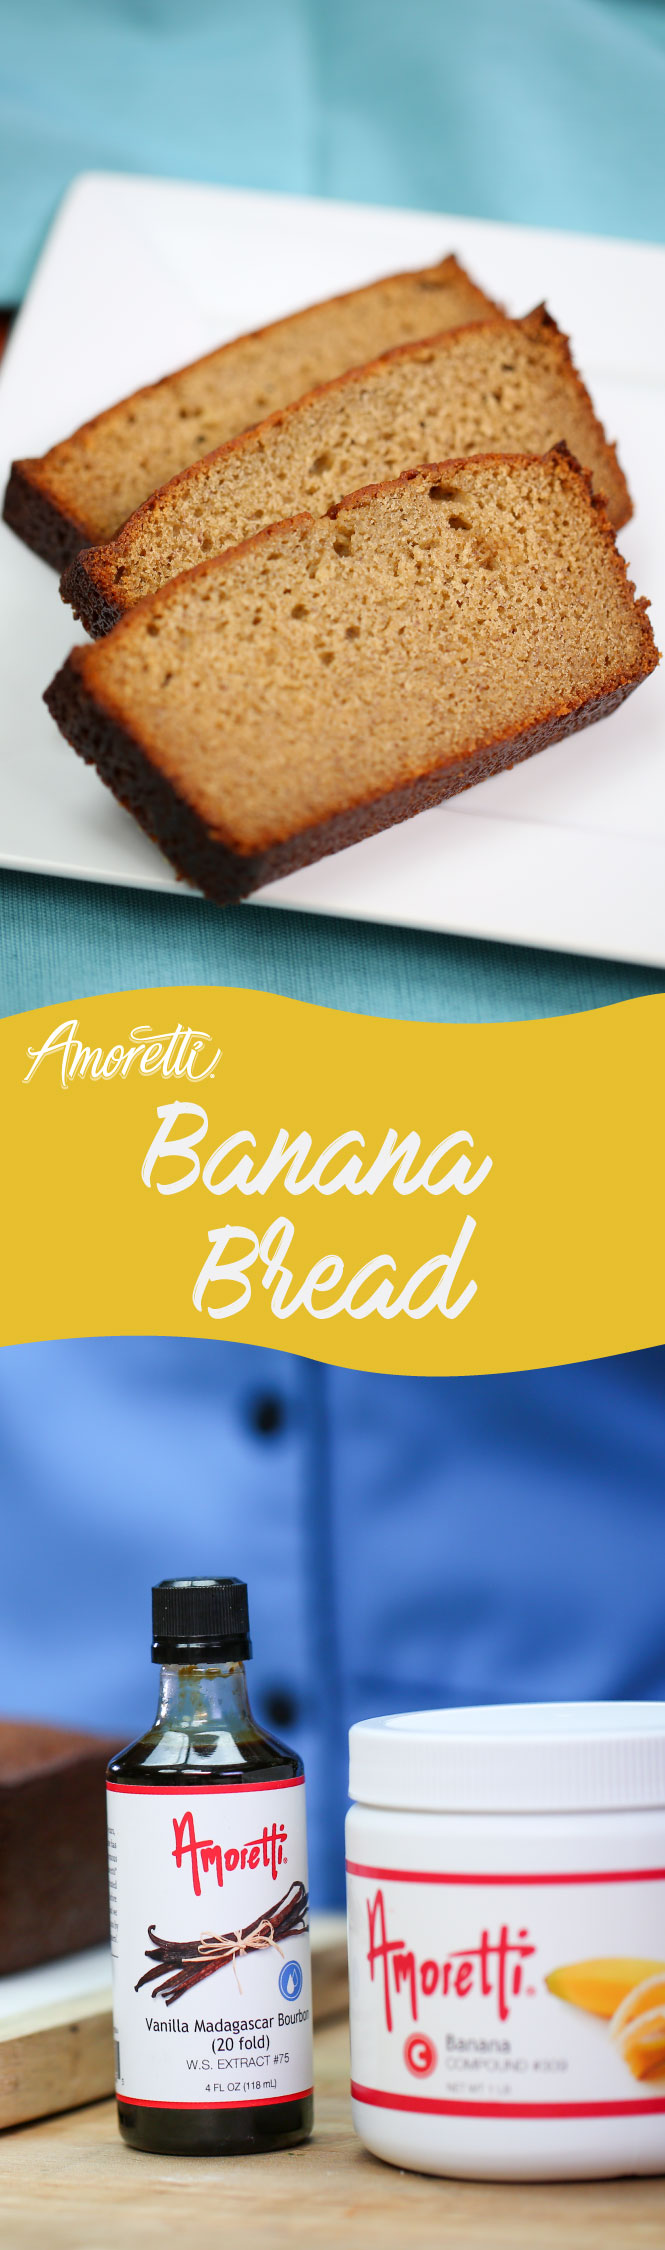 Here is our secret recipe for the most flavorful banana bread!